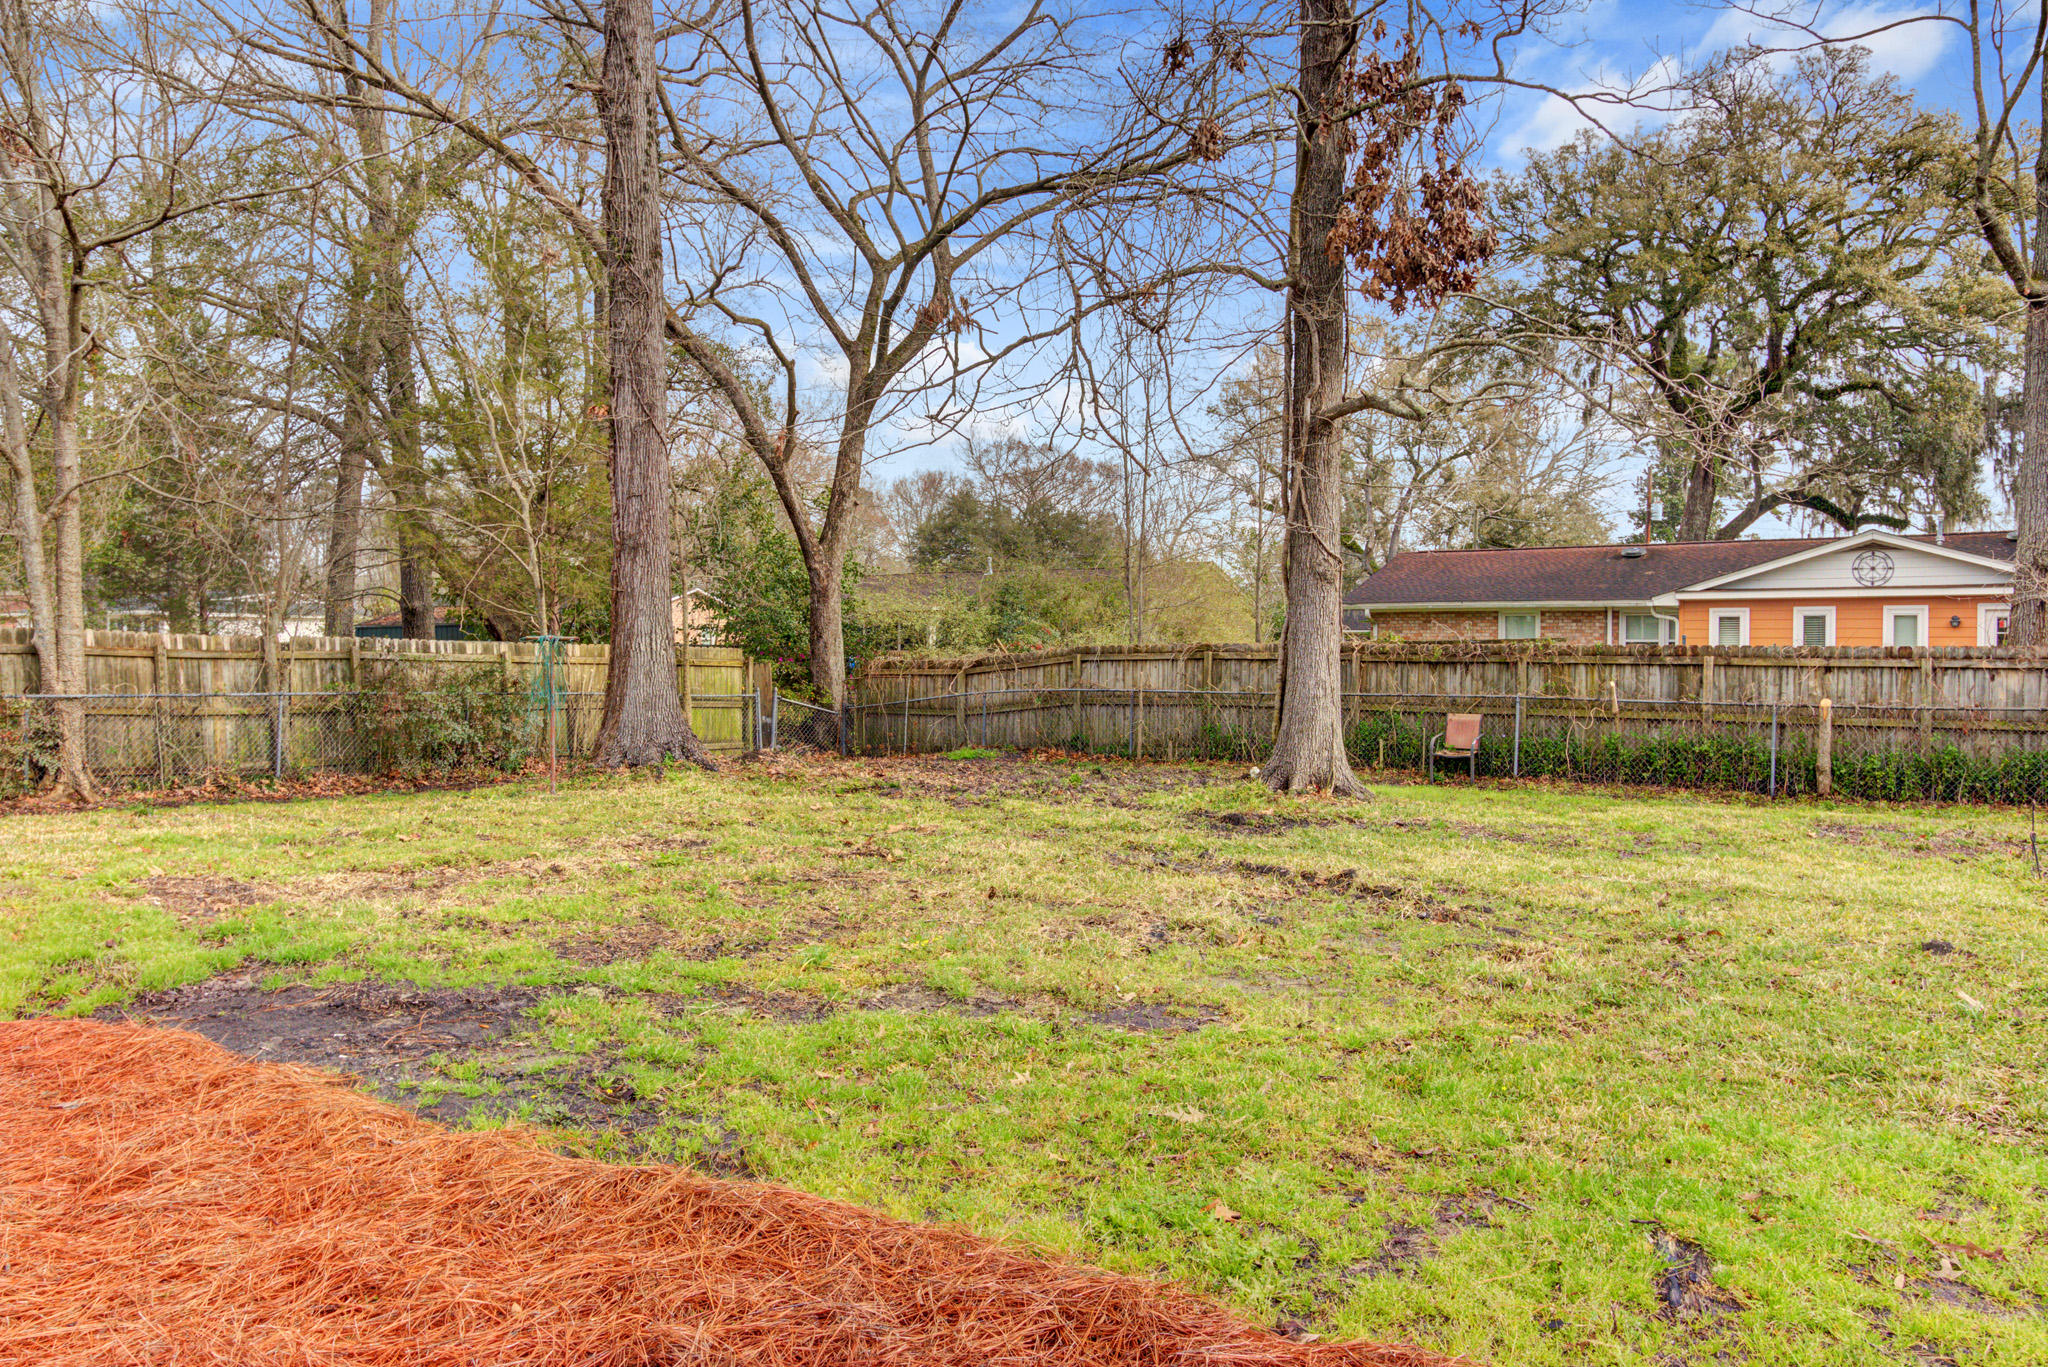 North Tranquil Acres Homes For Sale - 109 Monroe, Ladson, SC - 12